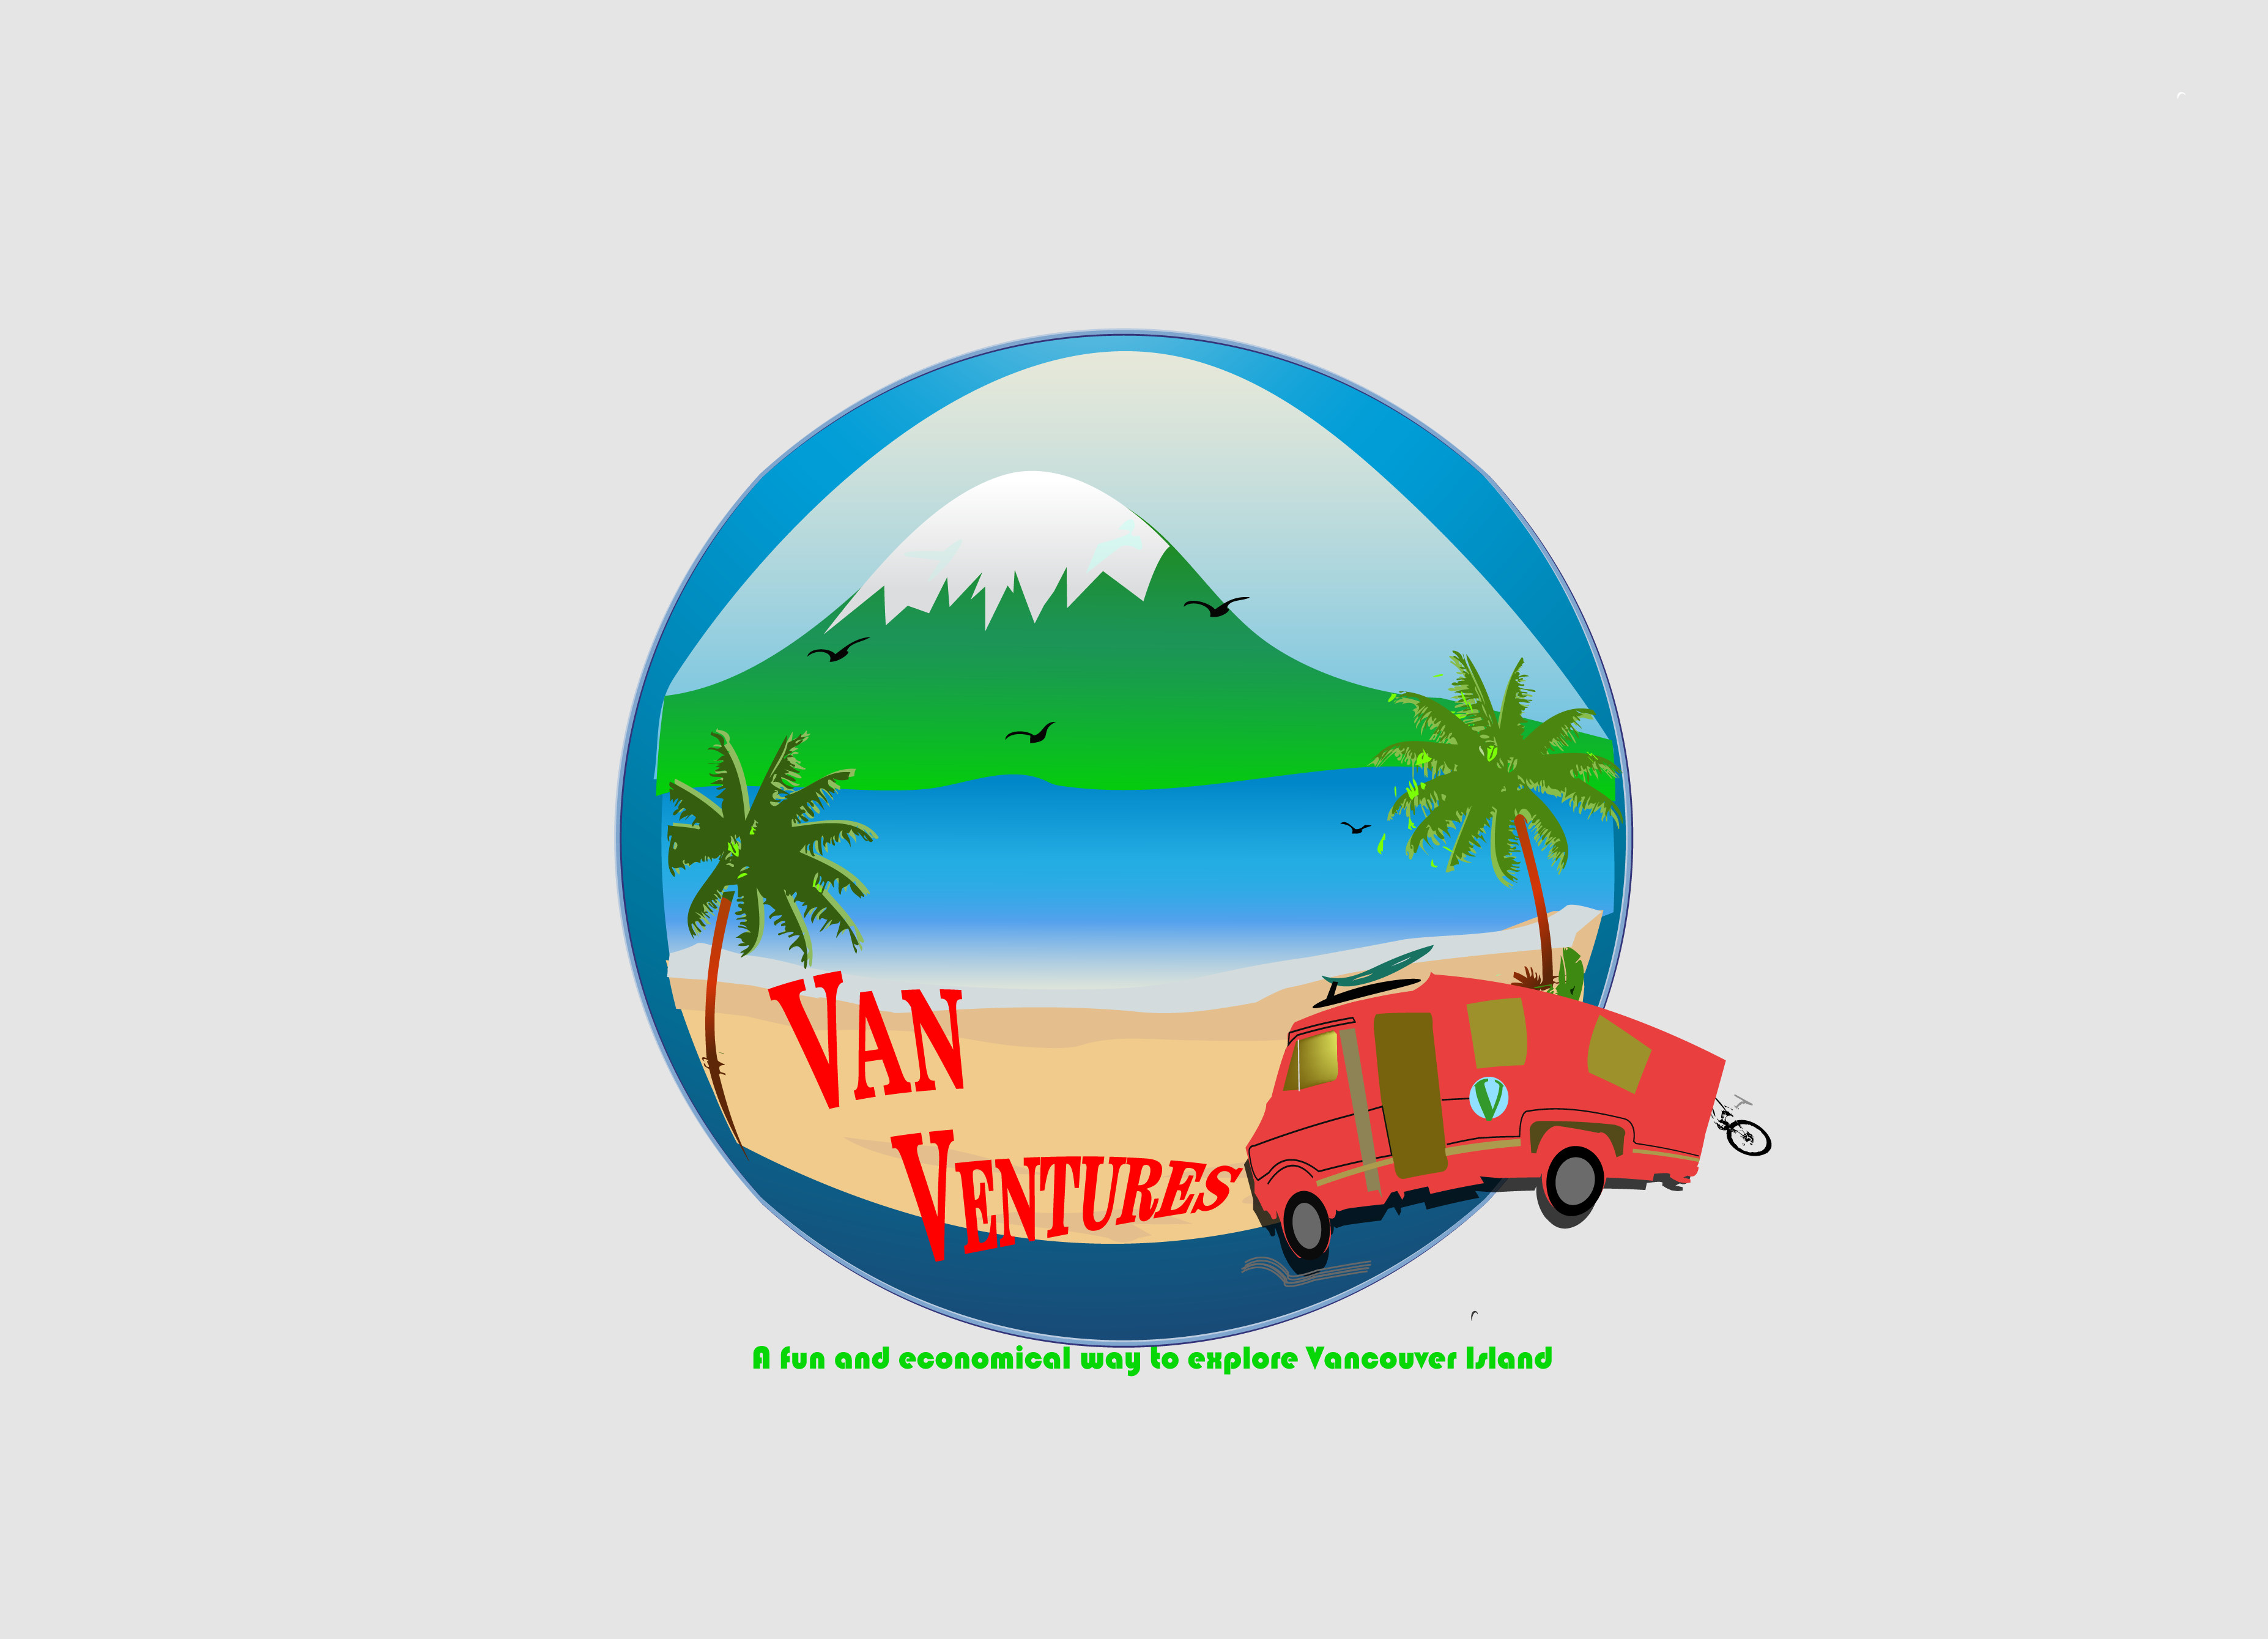 Logo Design by Sandiip Khanal - Entry No. 61 in the Logo Design Contest New Logo Design for Van Ventures.